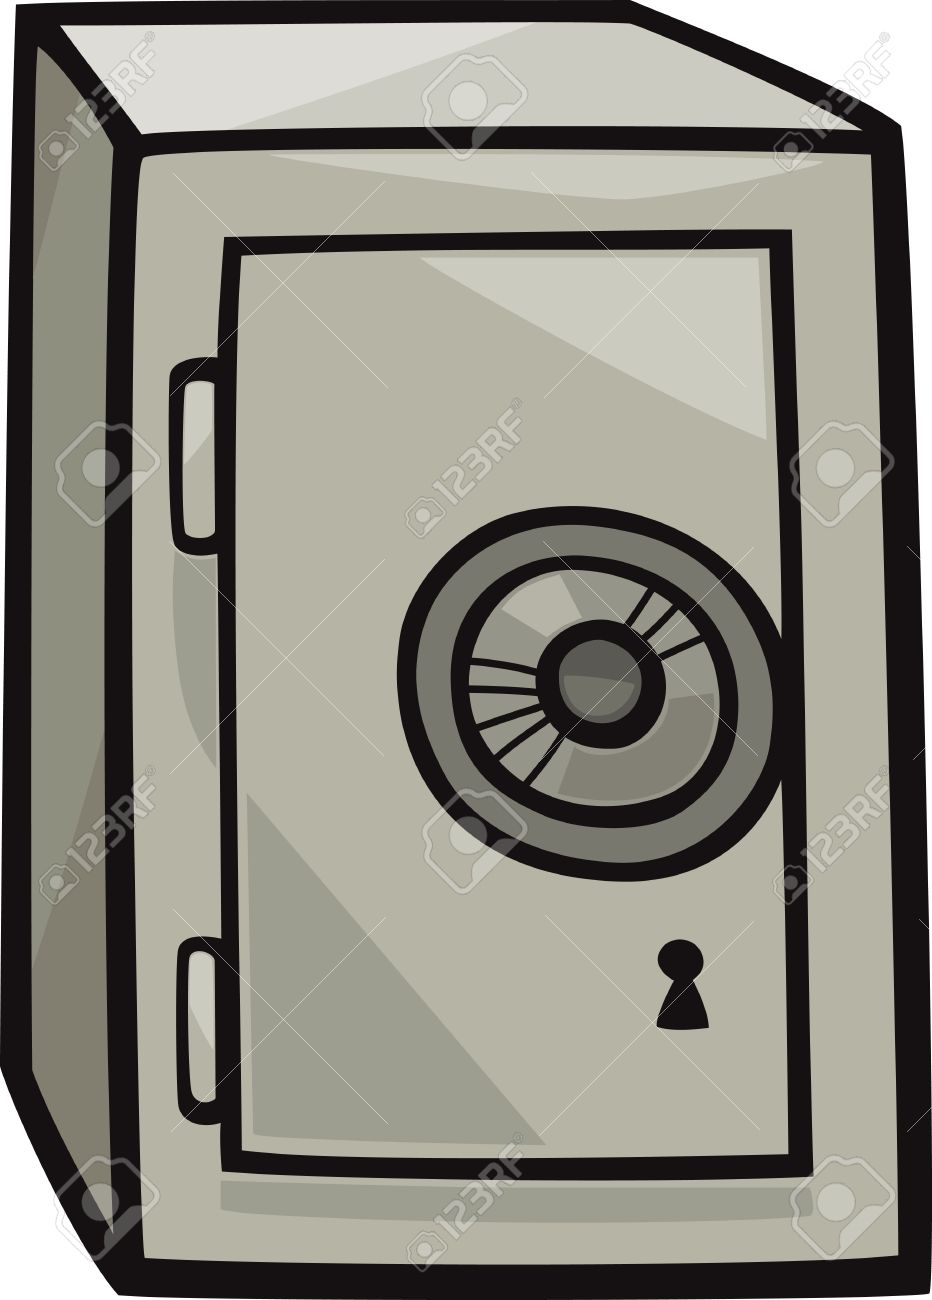 Cartoon Illustration Of Metal Safe Clip Art Royalty Free Cliparts.